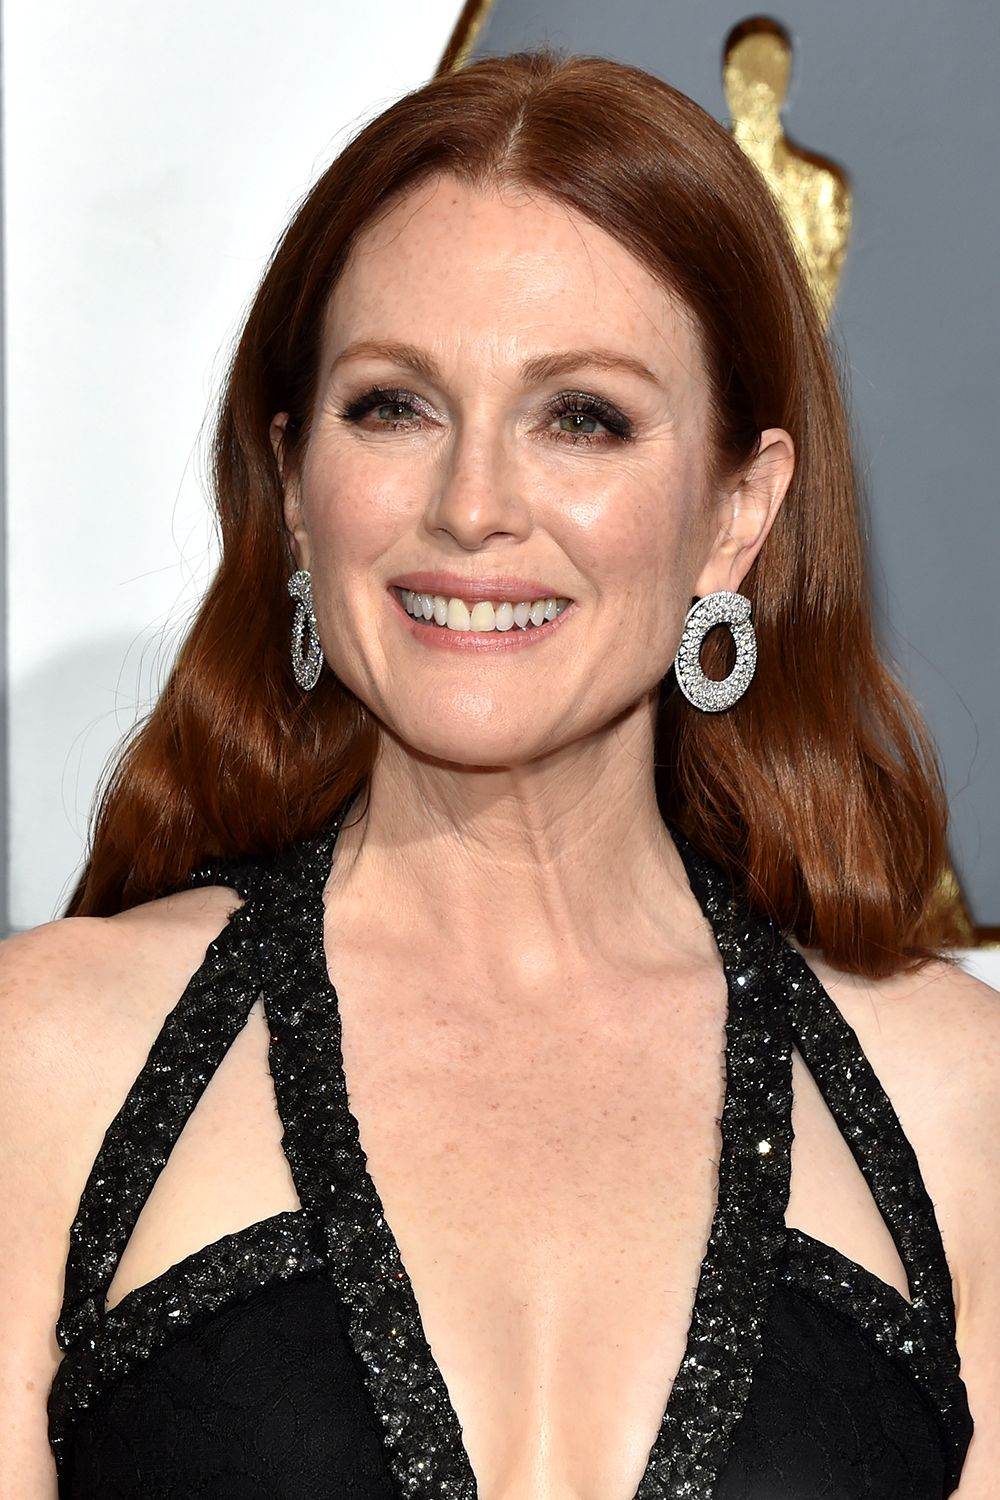 """Julianne Moore """"I don't believe it makes people look better,"""" Moore tells Allure when asked about cosmetic procedures, like botox. """"I think it just makes them look like they had something done to their face, and I don't think we find that instinctually appealing."""""""